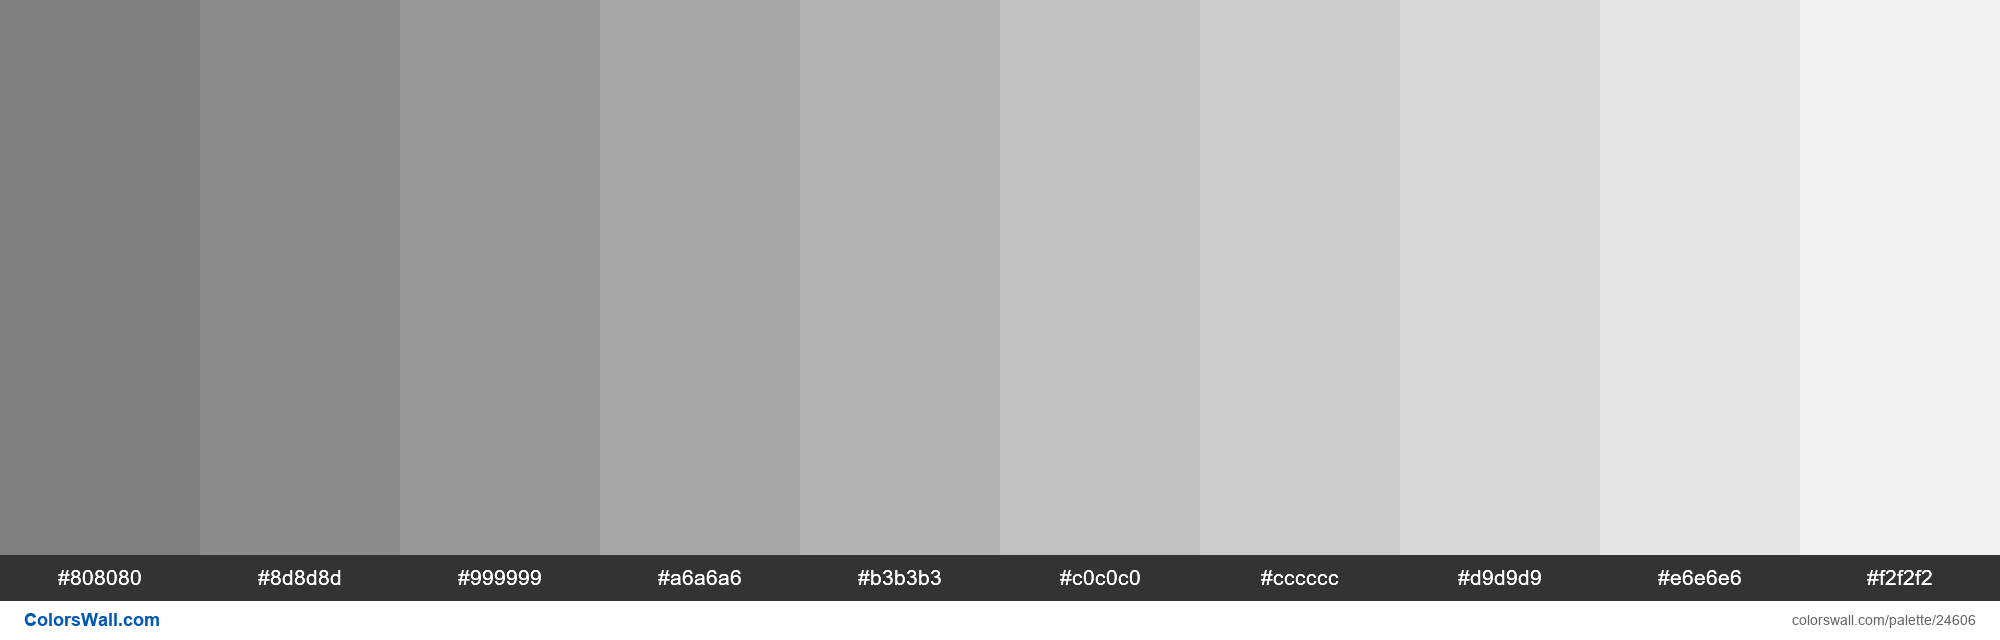 Tints of Gray #808080 hex color - #24606